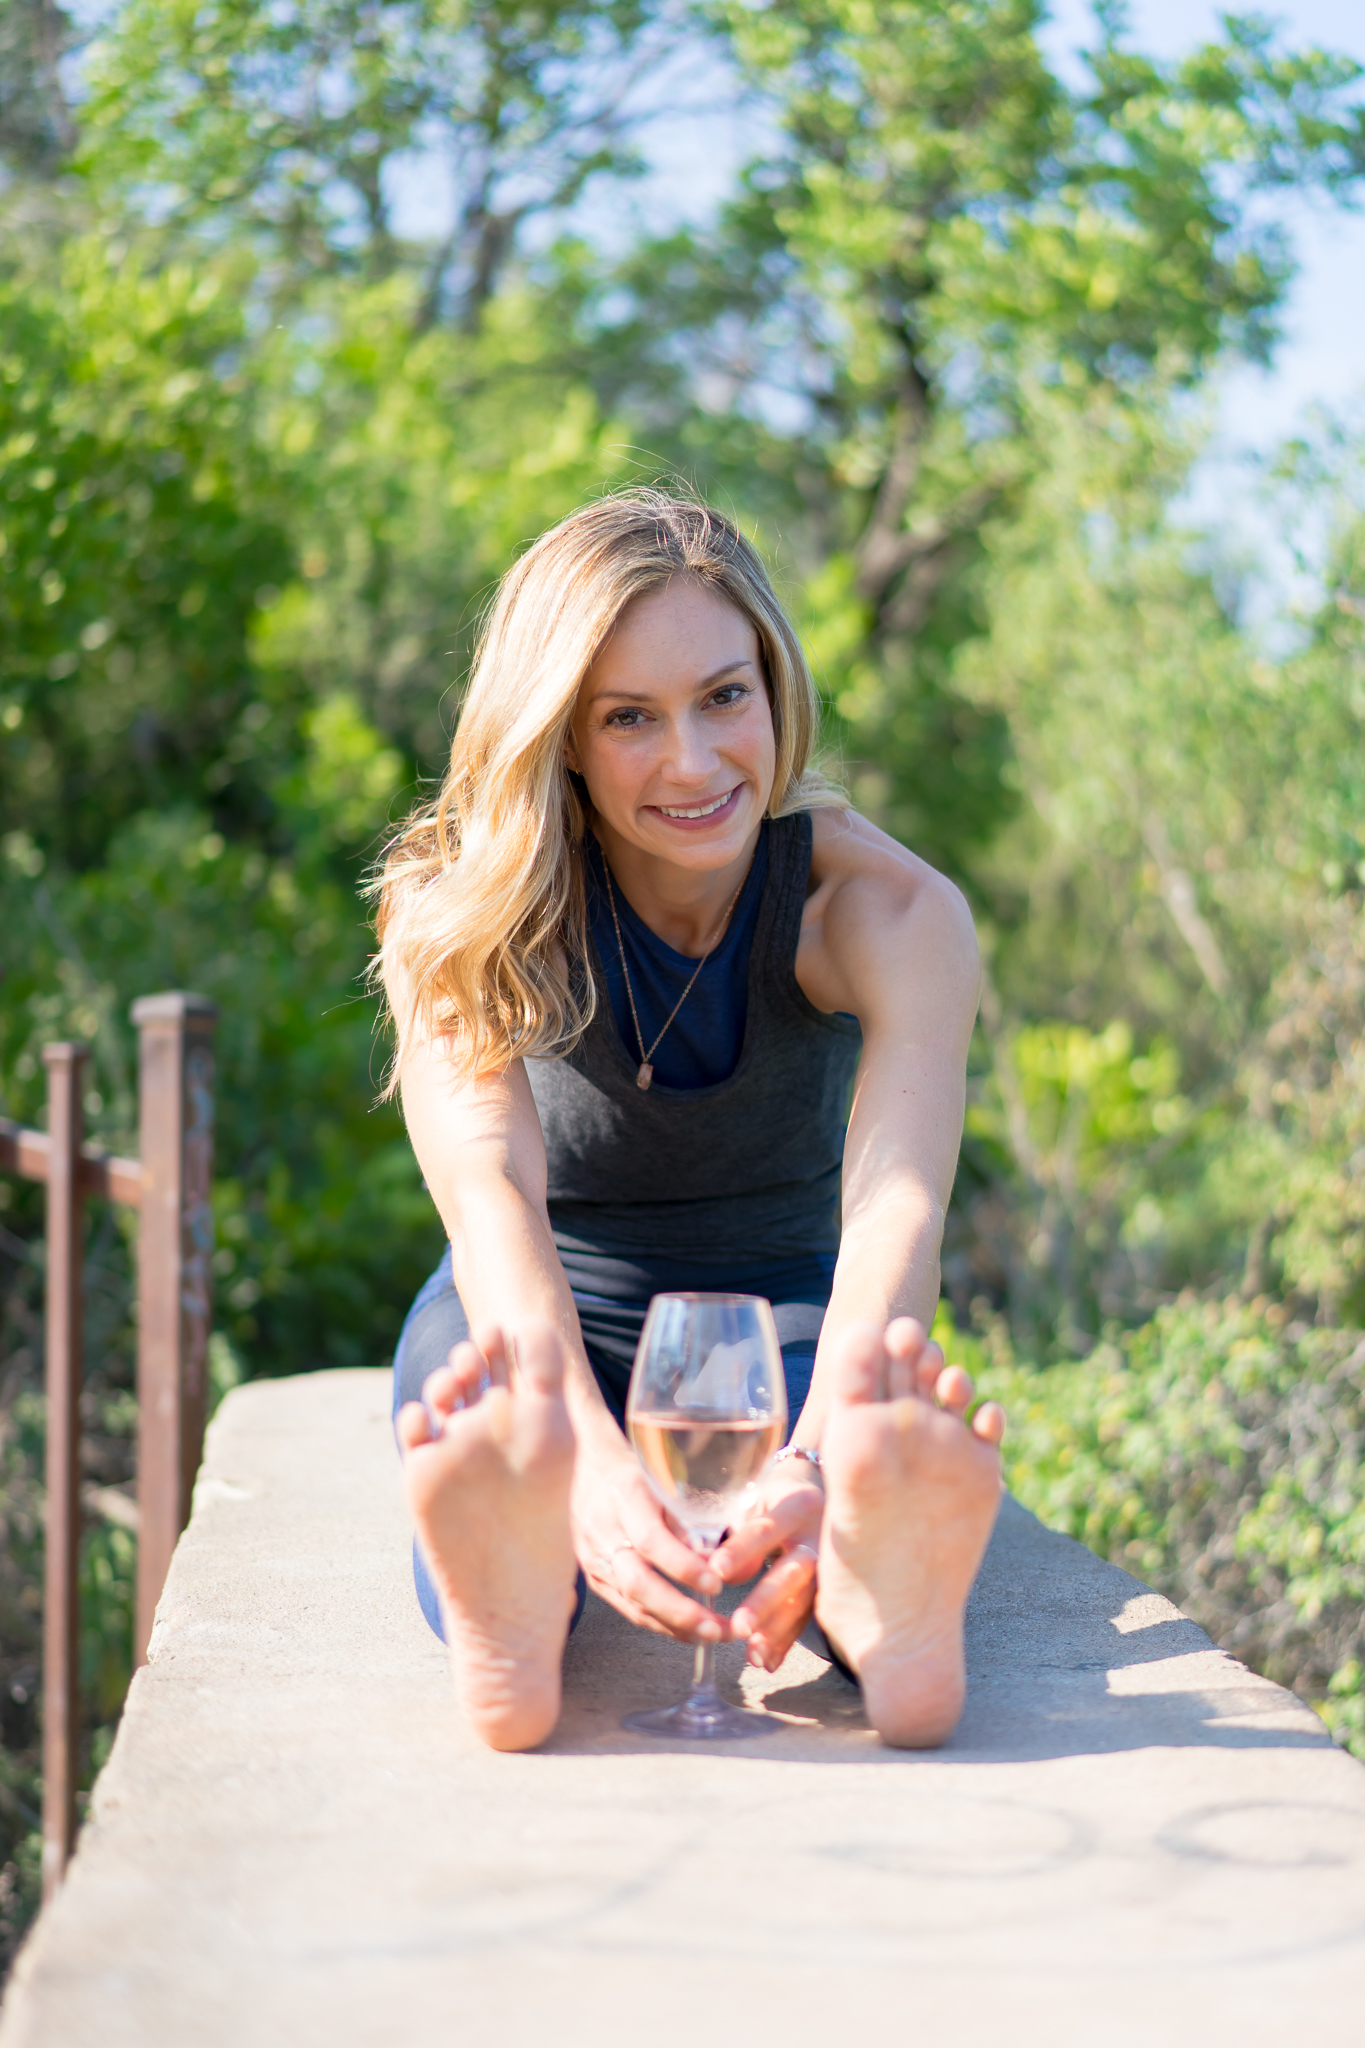 MORGAN PERRY, 4.5.19 - Morgan Perry is the founder of Vino Vinyasa Yoga, yoga classes that bring together vinyasa-based yoga and fun wine facts through creative yoga poses, currently offered in New York City and Austin, Texas.